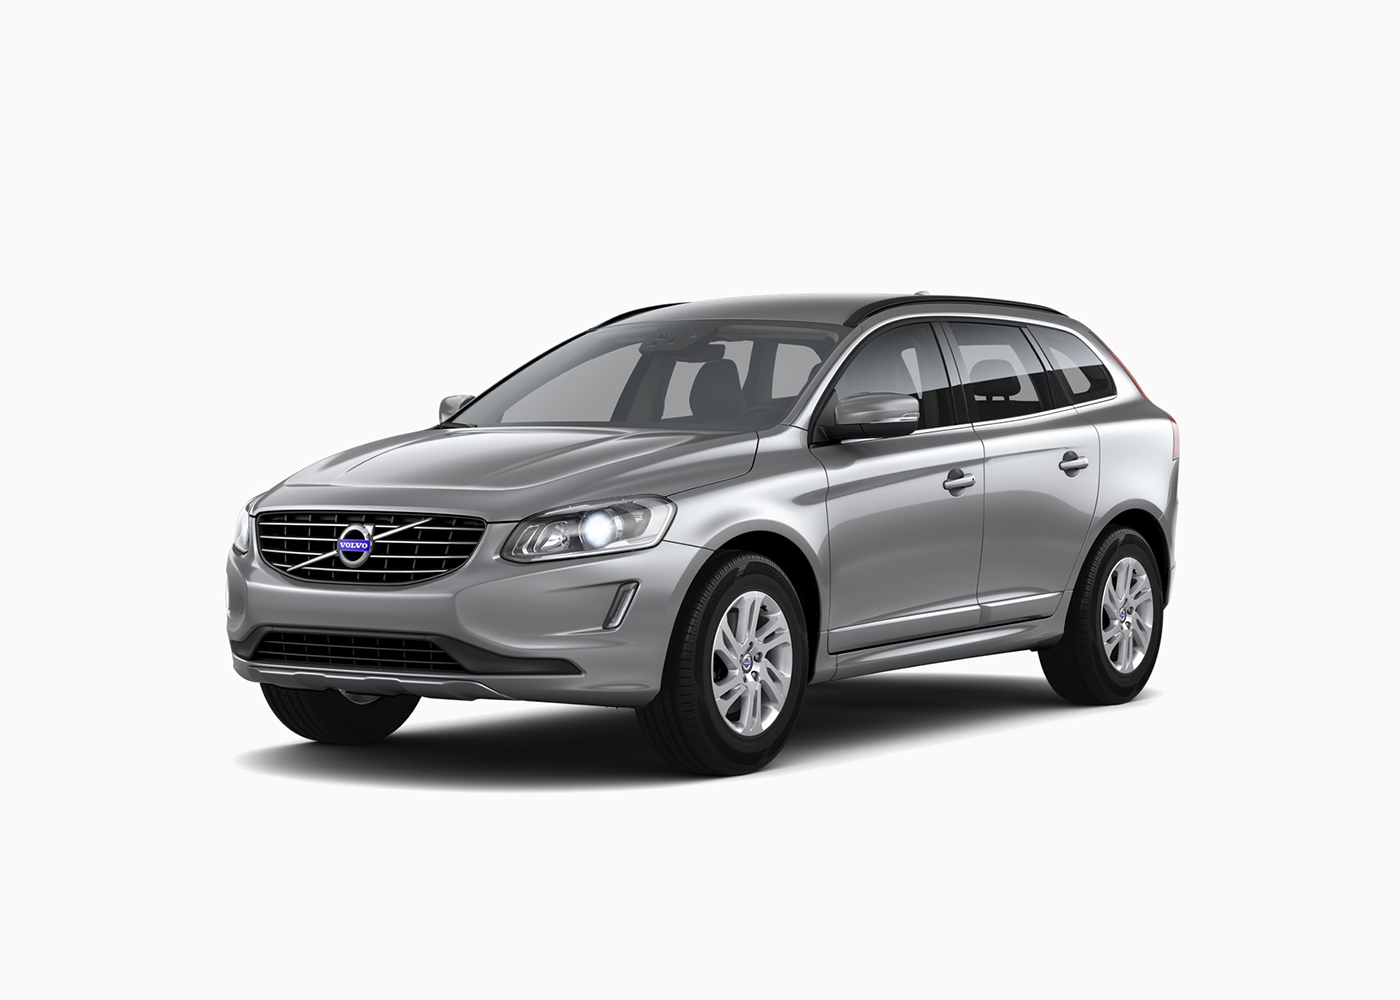 volvo xc60 business plus d3 aut silver bright km0 a soli 32150 su miacar 9xv6l. Black Bedroom Furniture Sets. Home Design Ideas